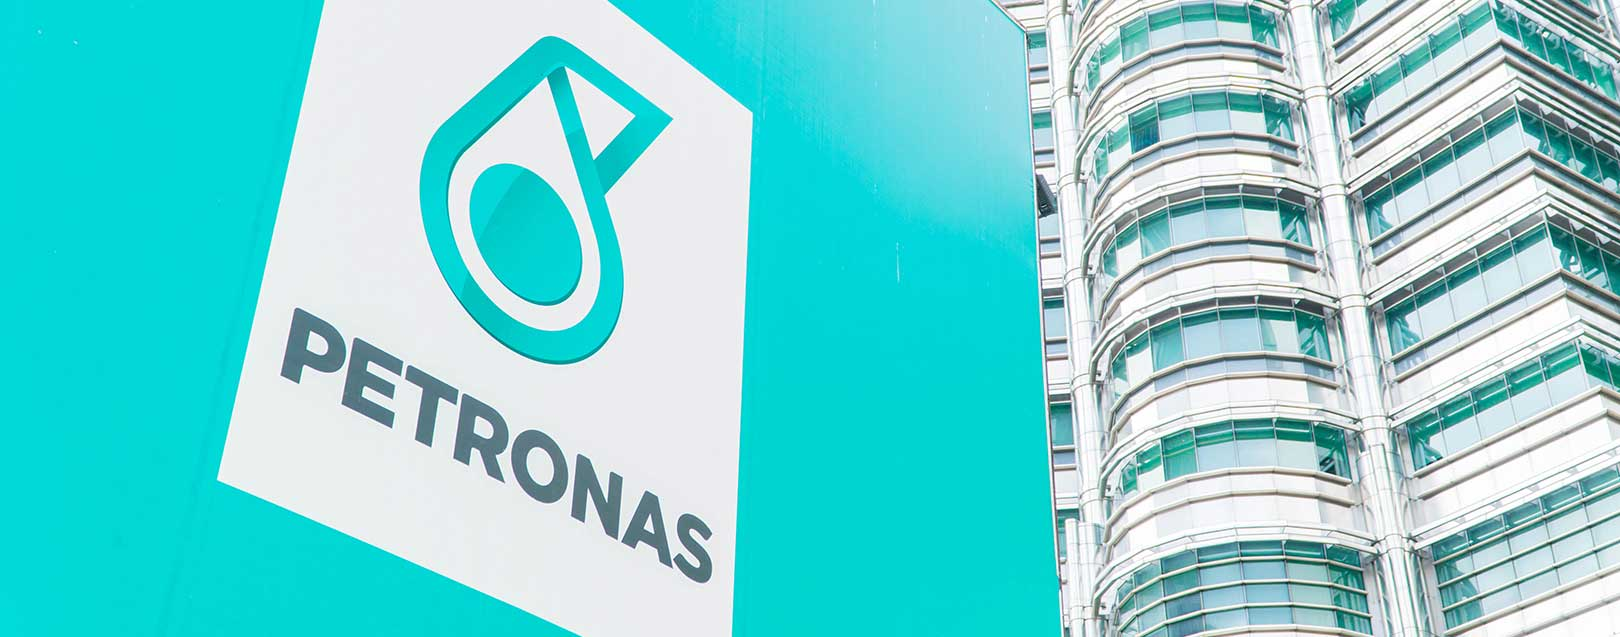 Petronas to invest $150 million in Indian lubricants sector